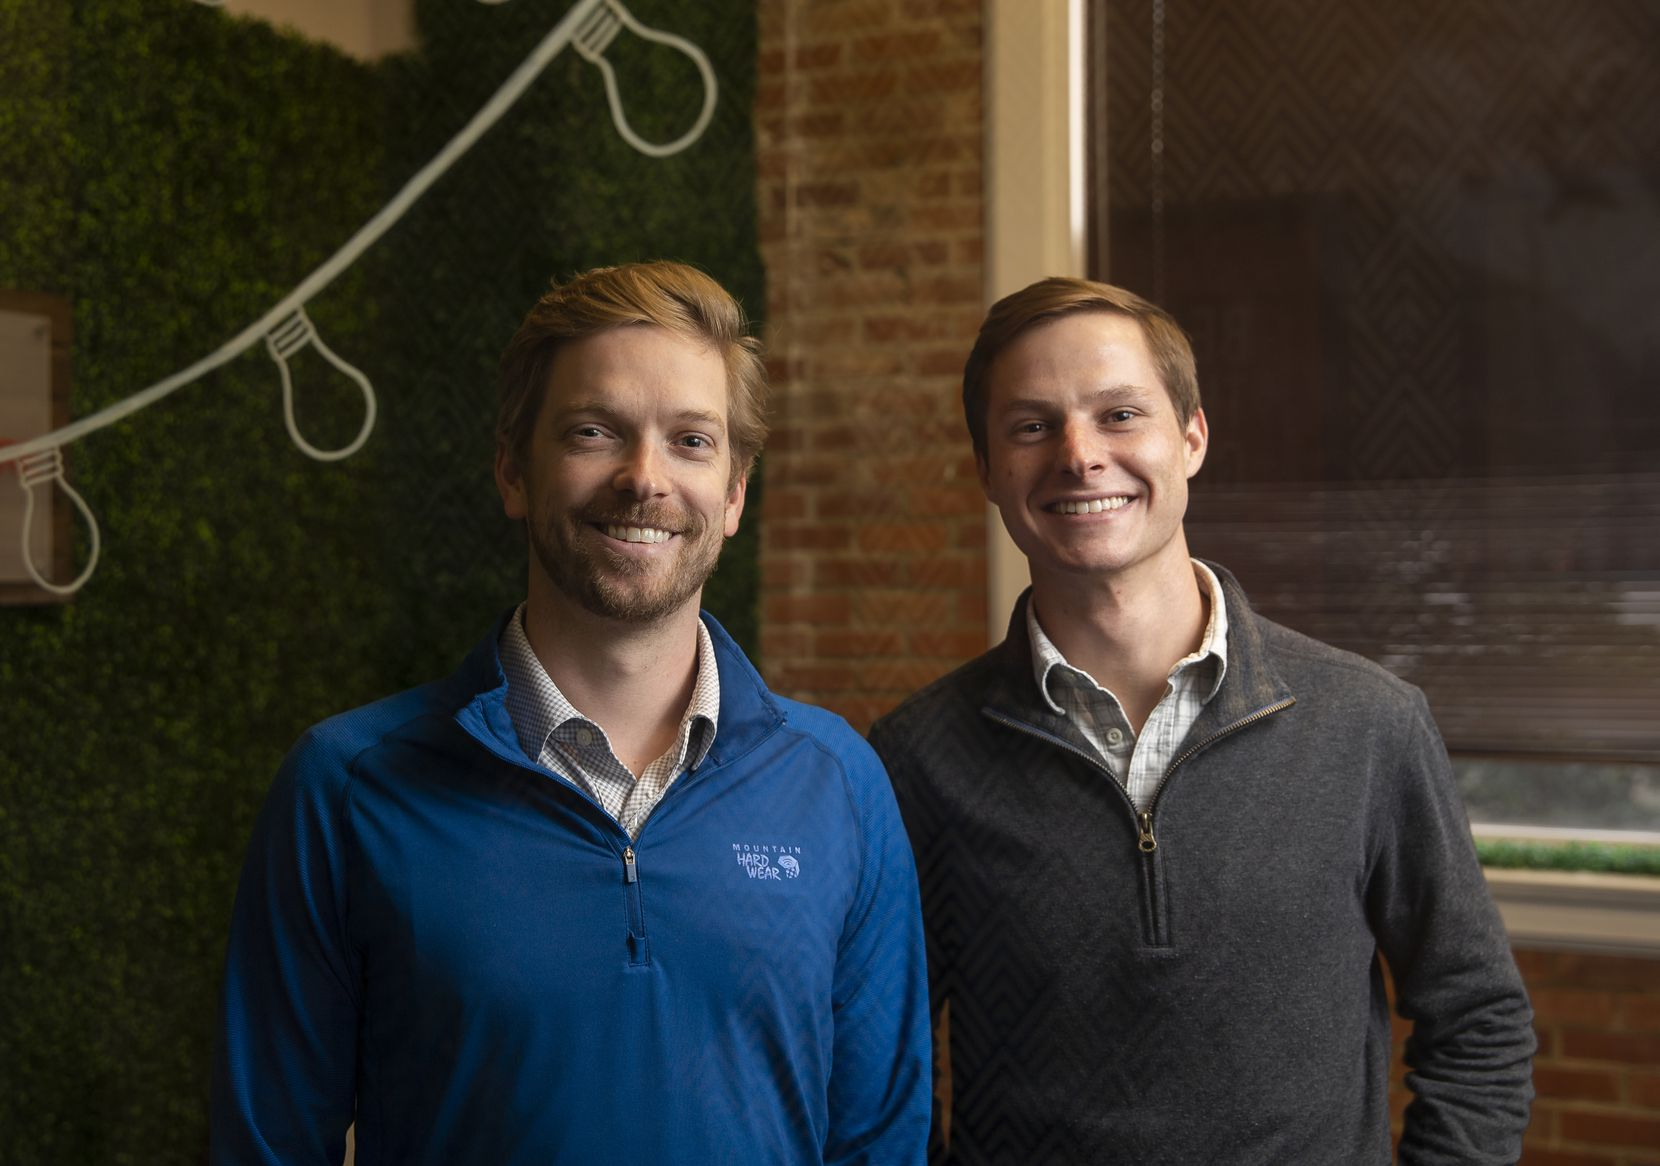 InspireMore founder and CEO Robert Neely Jr. (left) and chief marketing officer Hunter Stensrud pose for a portrait in their West End office space on Dec. 16, 2019. (Juan Figueroa/The Dallas Morning News)